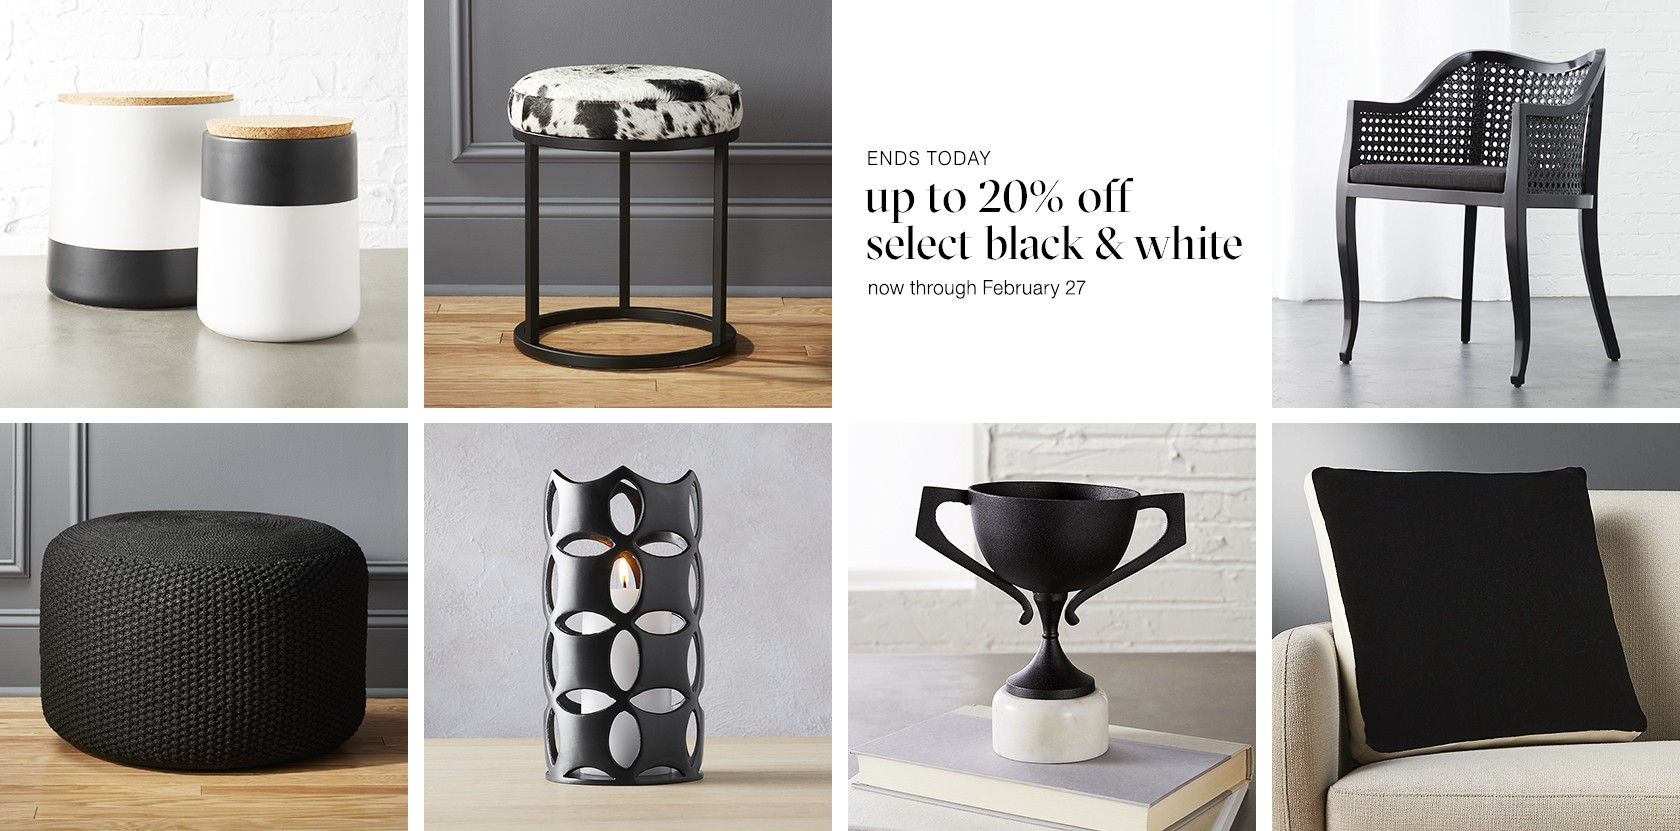 up to 20% off select black and white